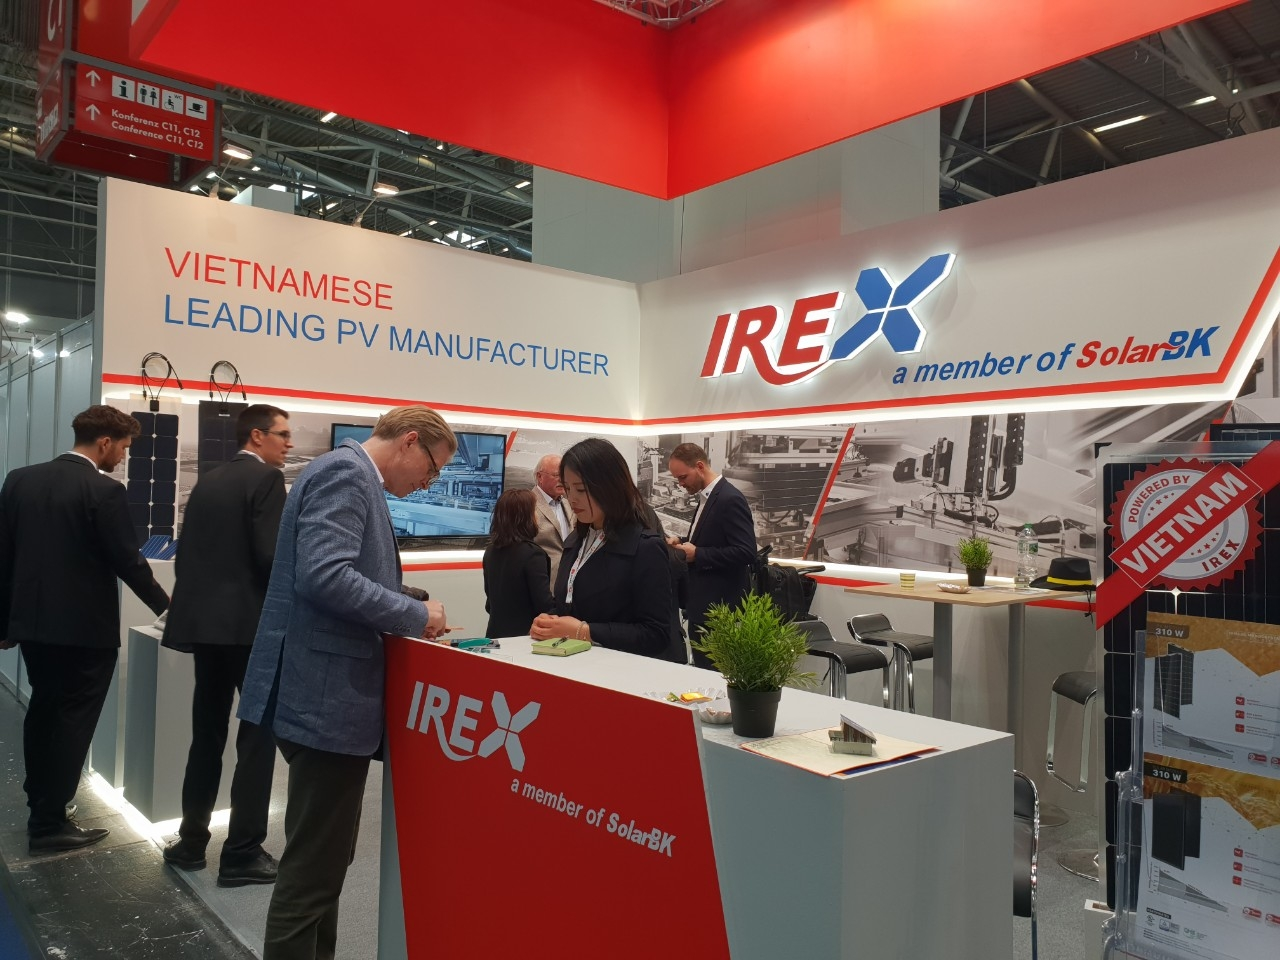 irex solar panels bring vietnamese brand to the world